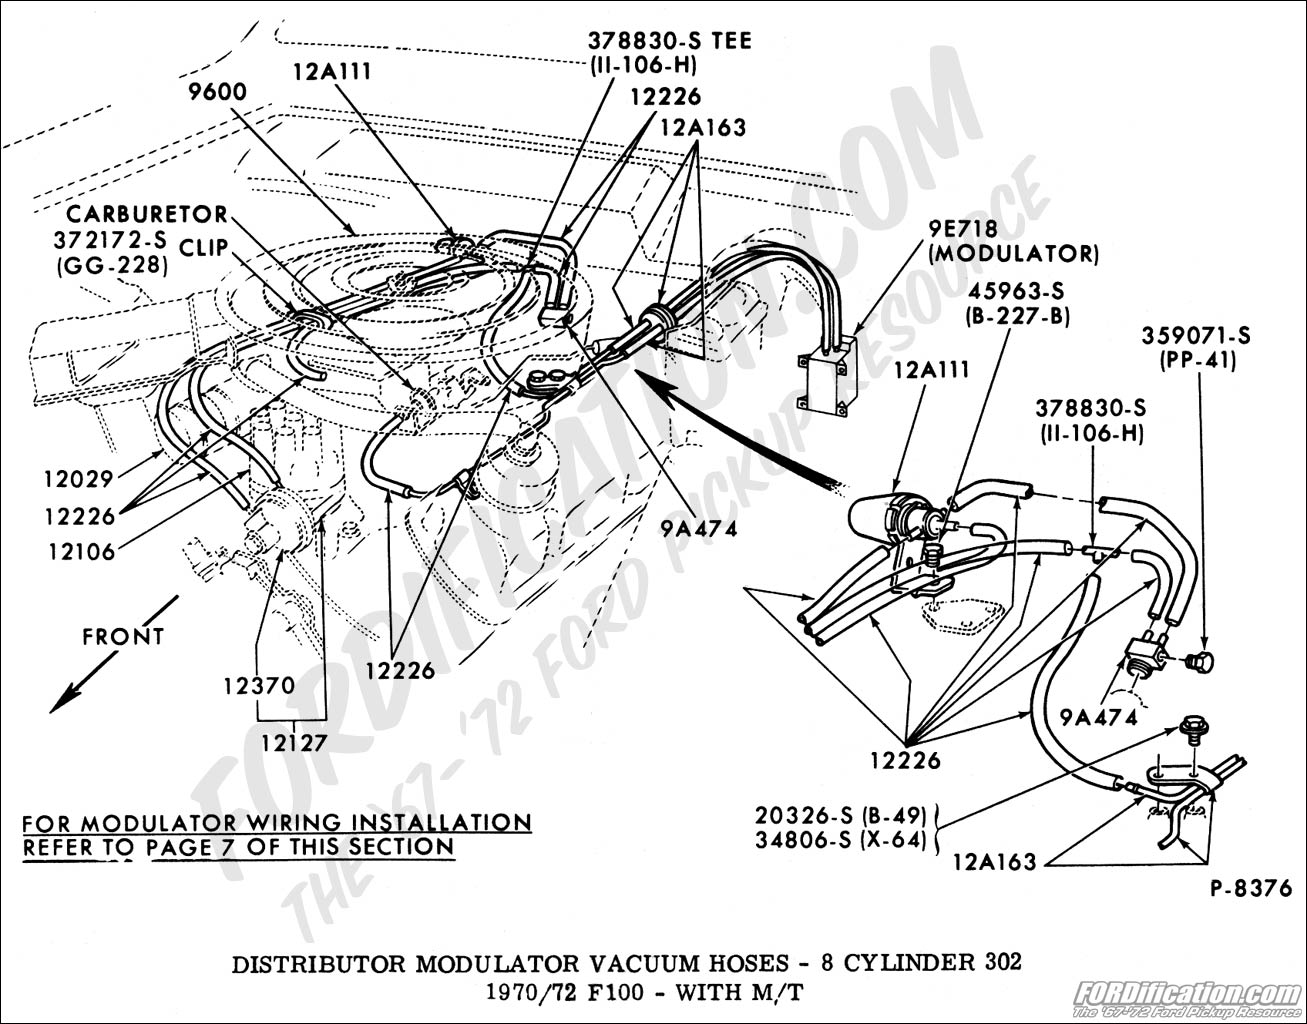 wiring diagram harness routing under dash for module wiring harness